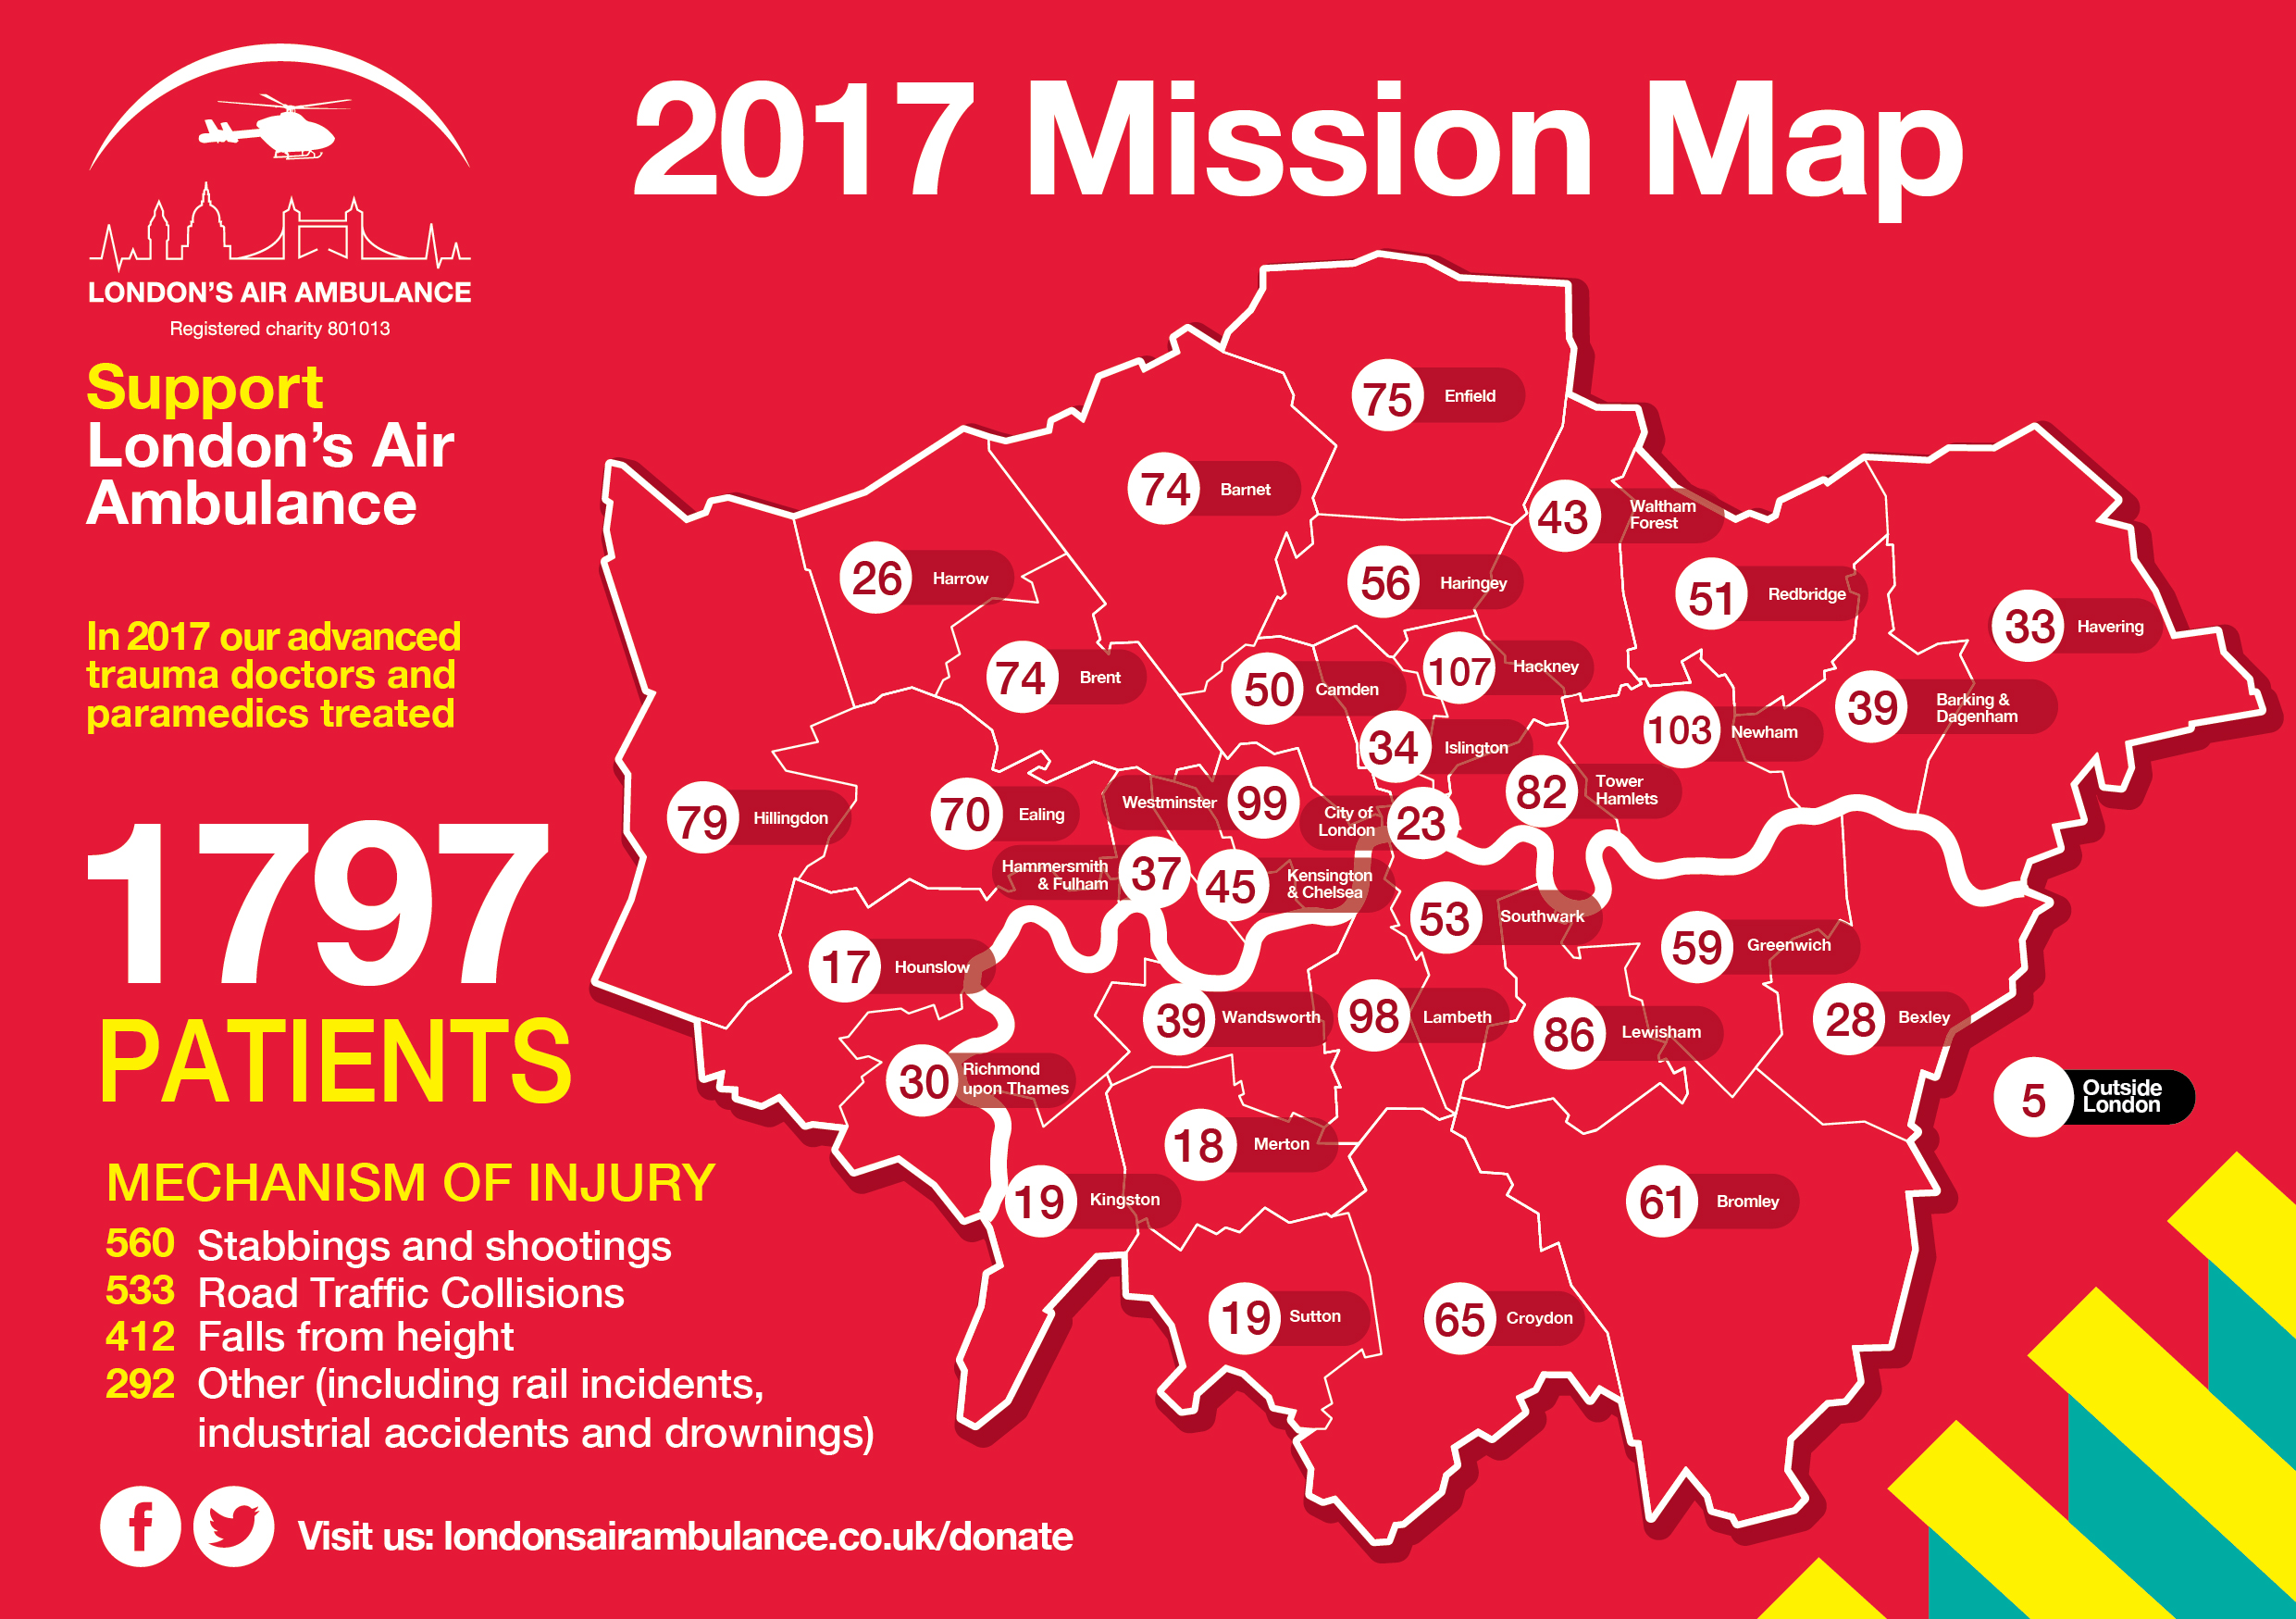 Mission statistics for 2017 released | London's Air Ambulance